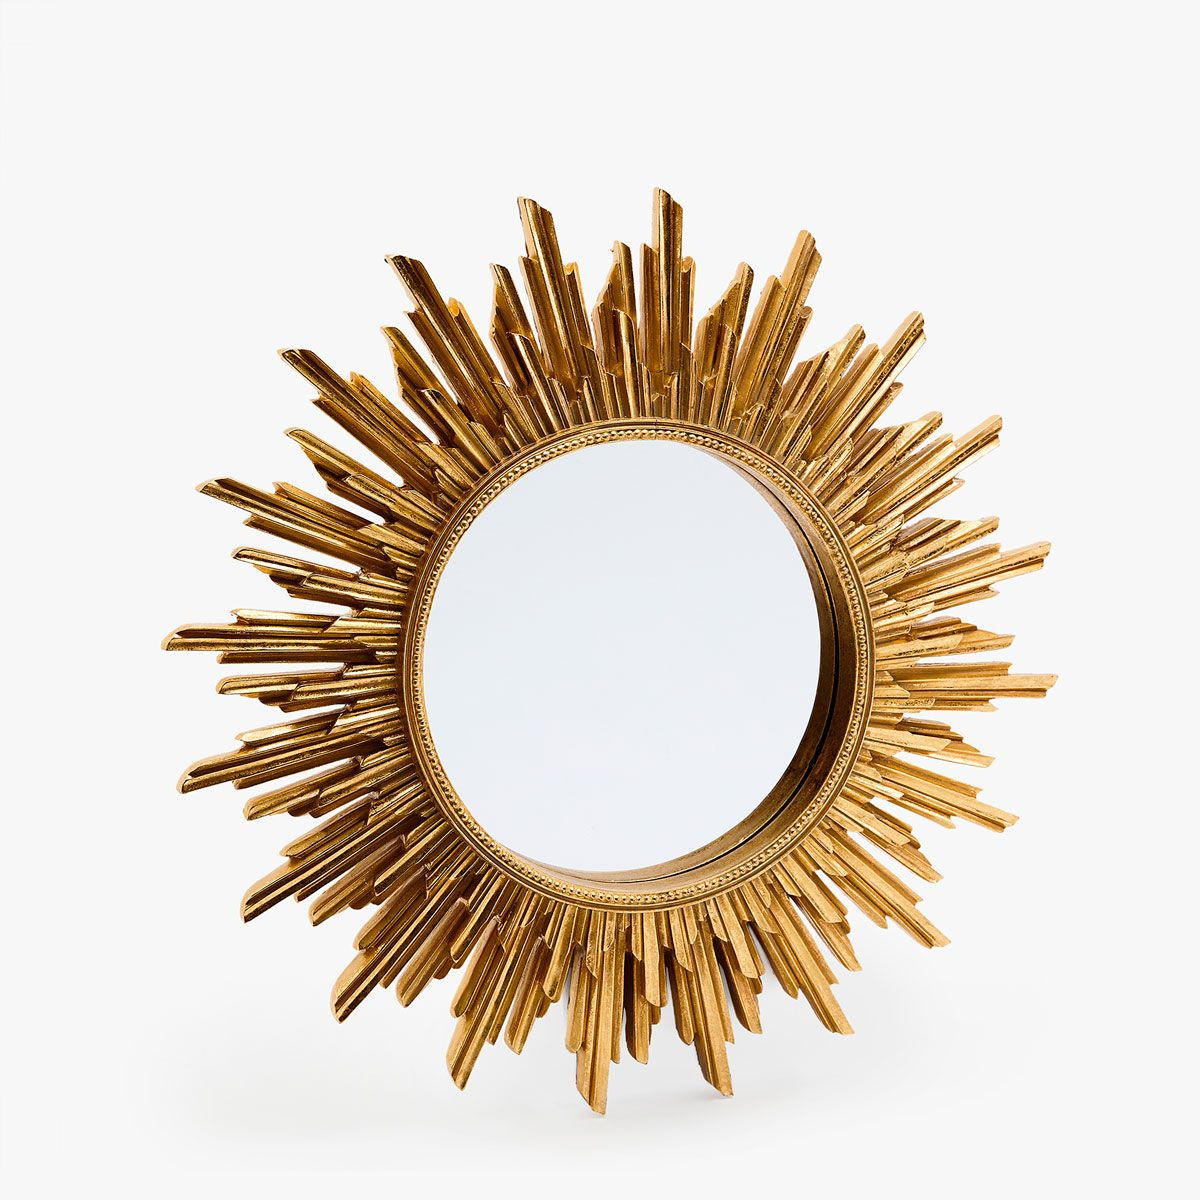 Image 1 Of The Product Sun Shaped Mirror | Zara Home Within Sun Shaped Wall Mirrors (View 4 of 20)